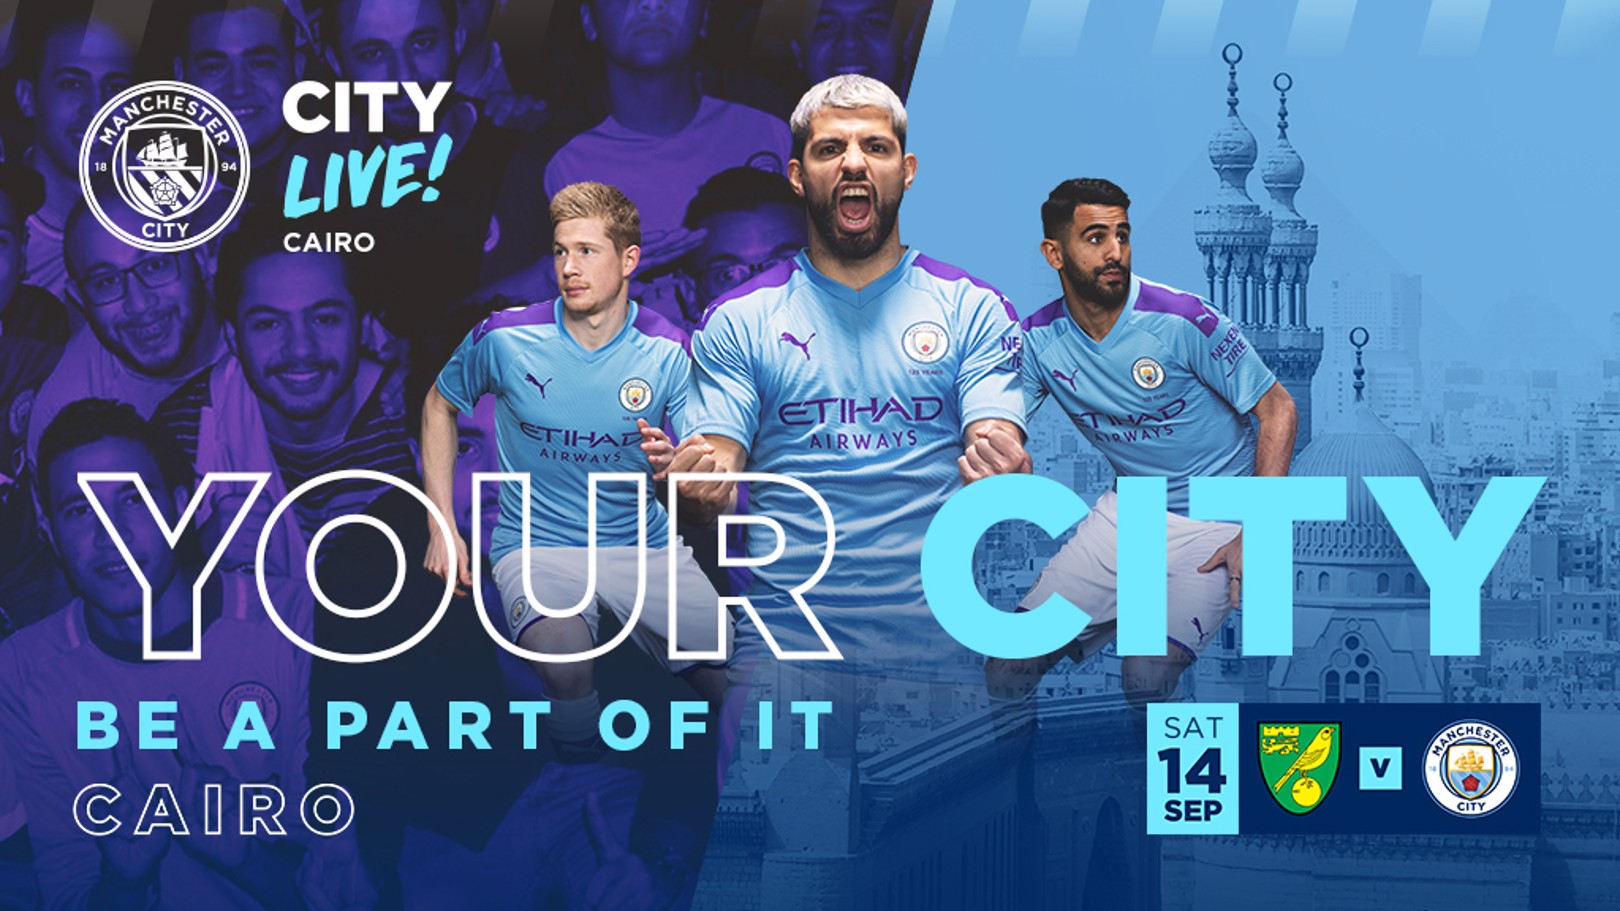 CITY LIVE: Join us in Cairo